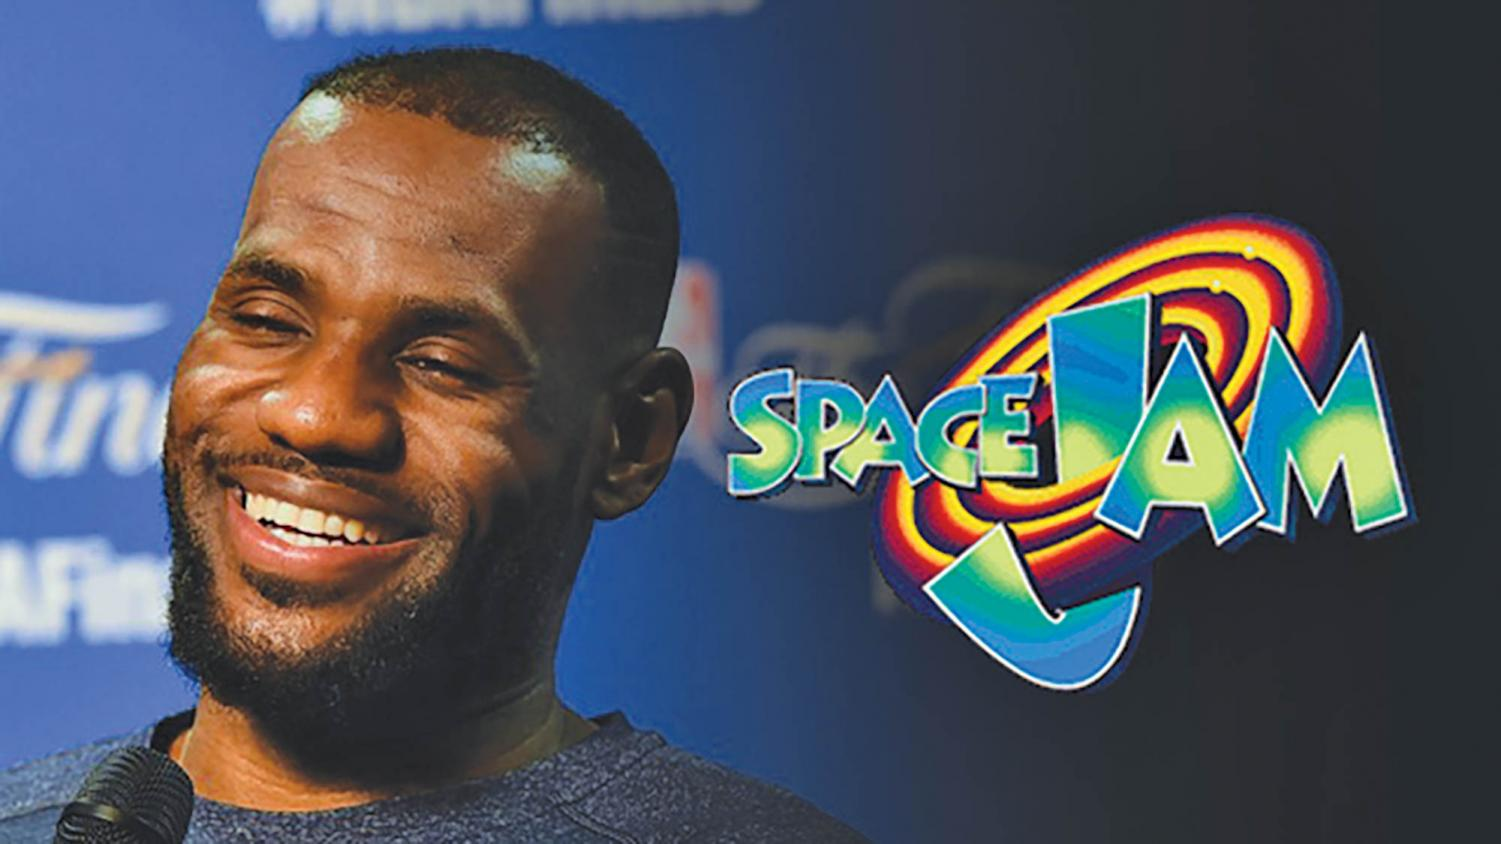 LeBron James will star in